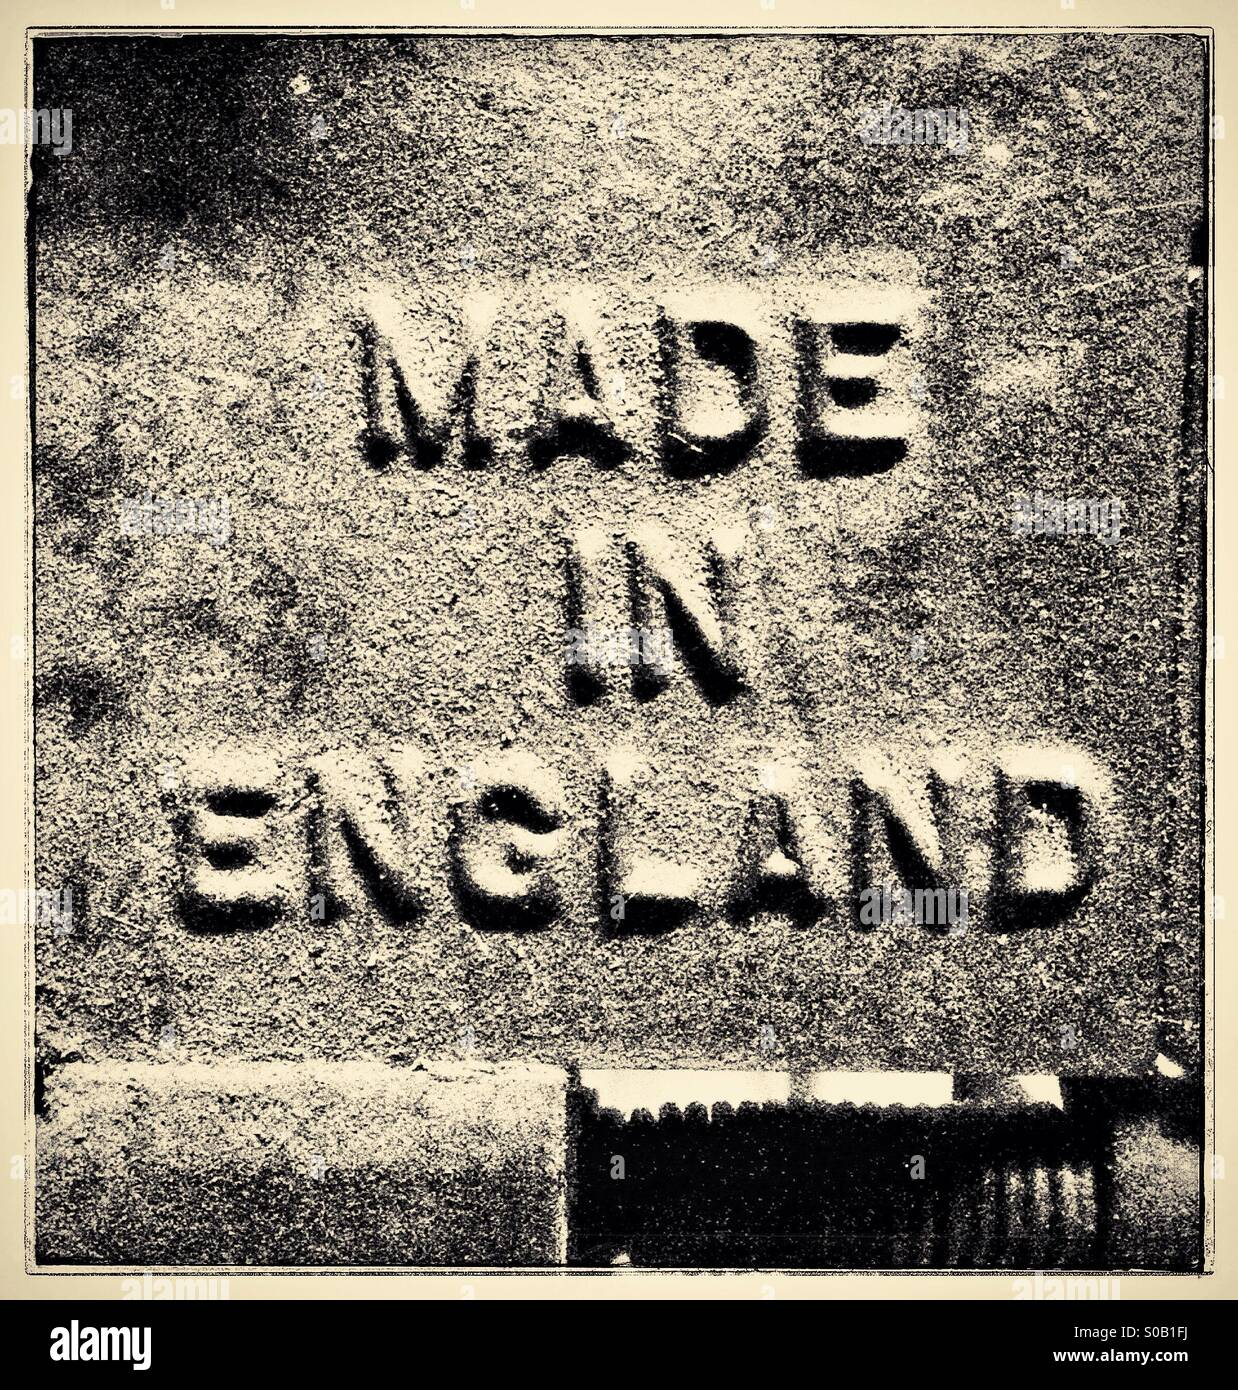 Made in England cast on the side of an old metal working vice Stock Photo